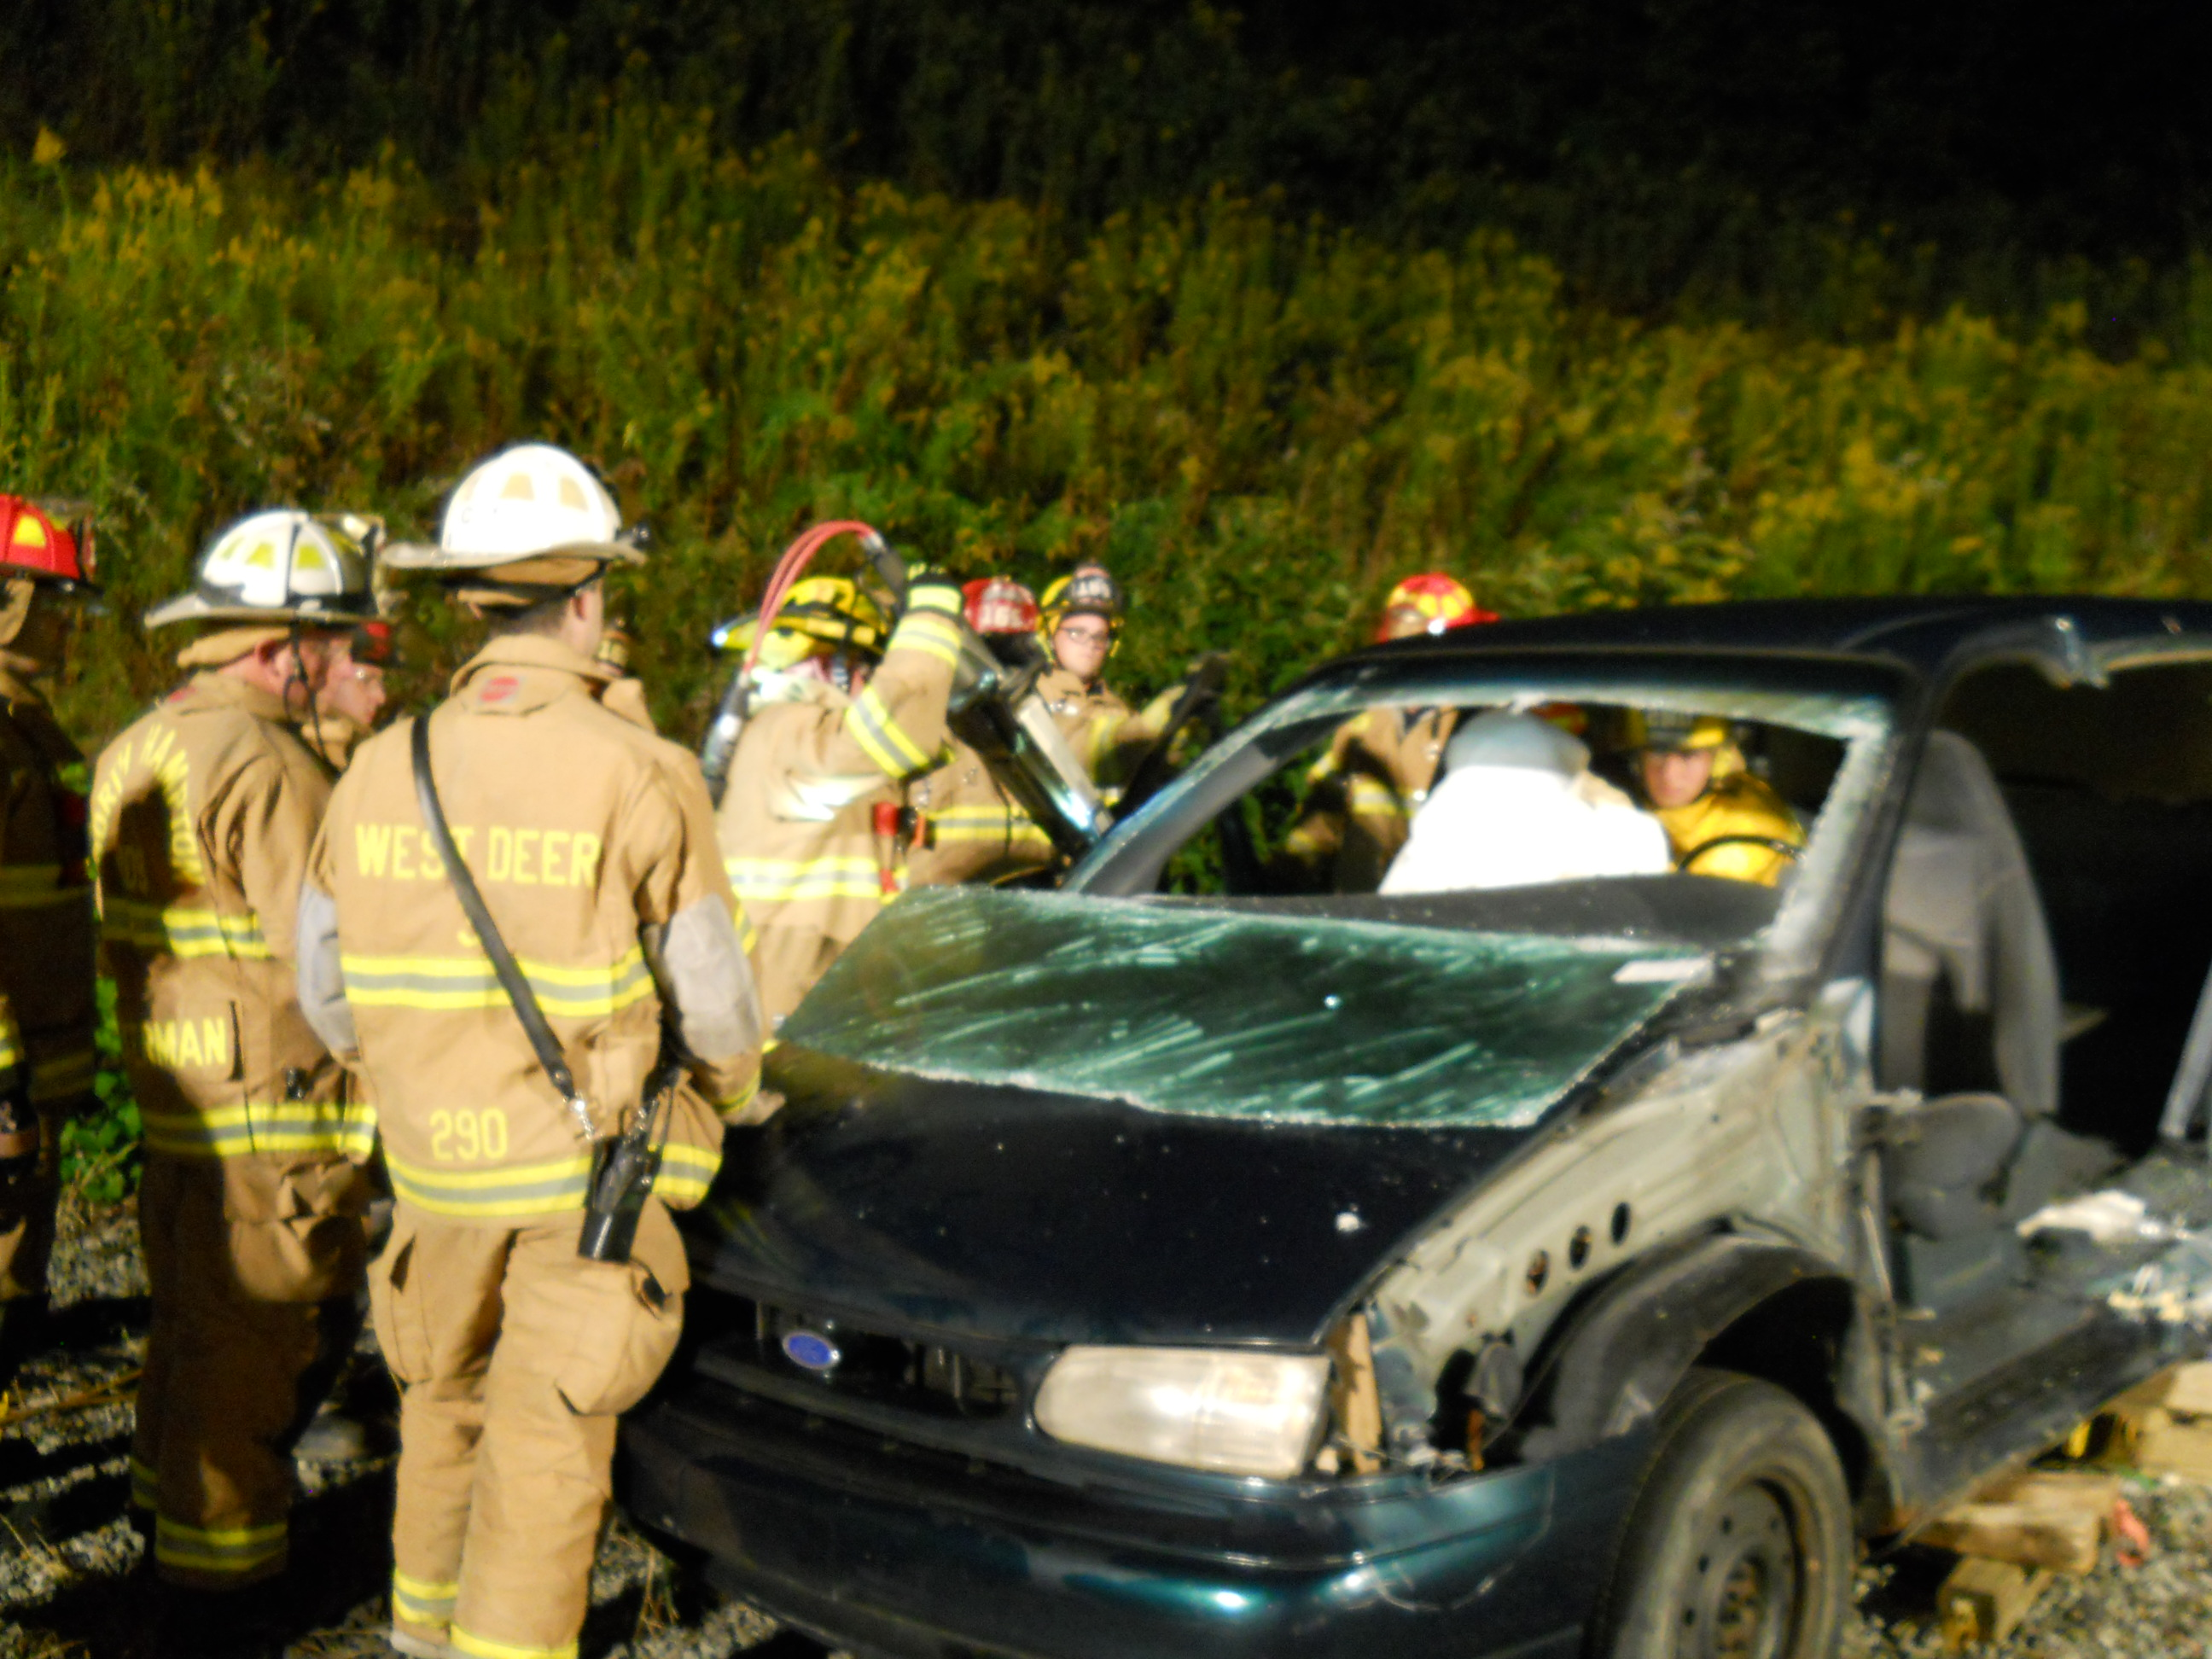 Vehicle-Rescue-Training-with-165-025